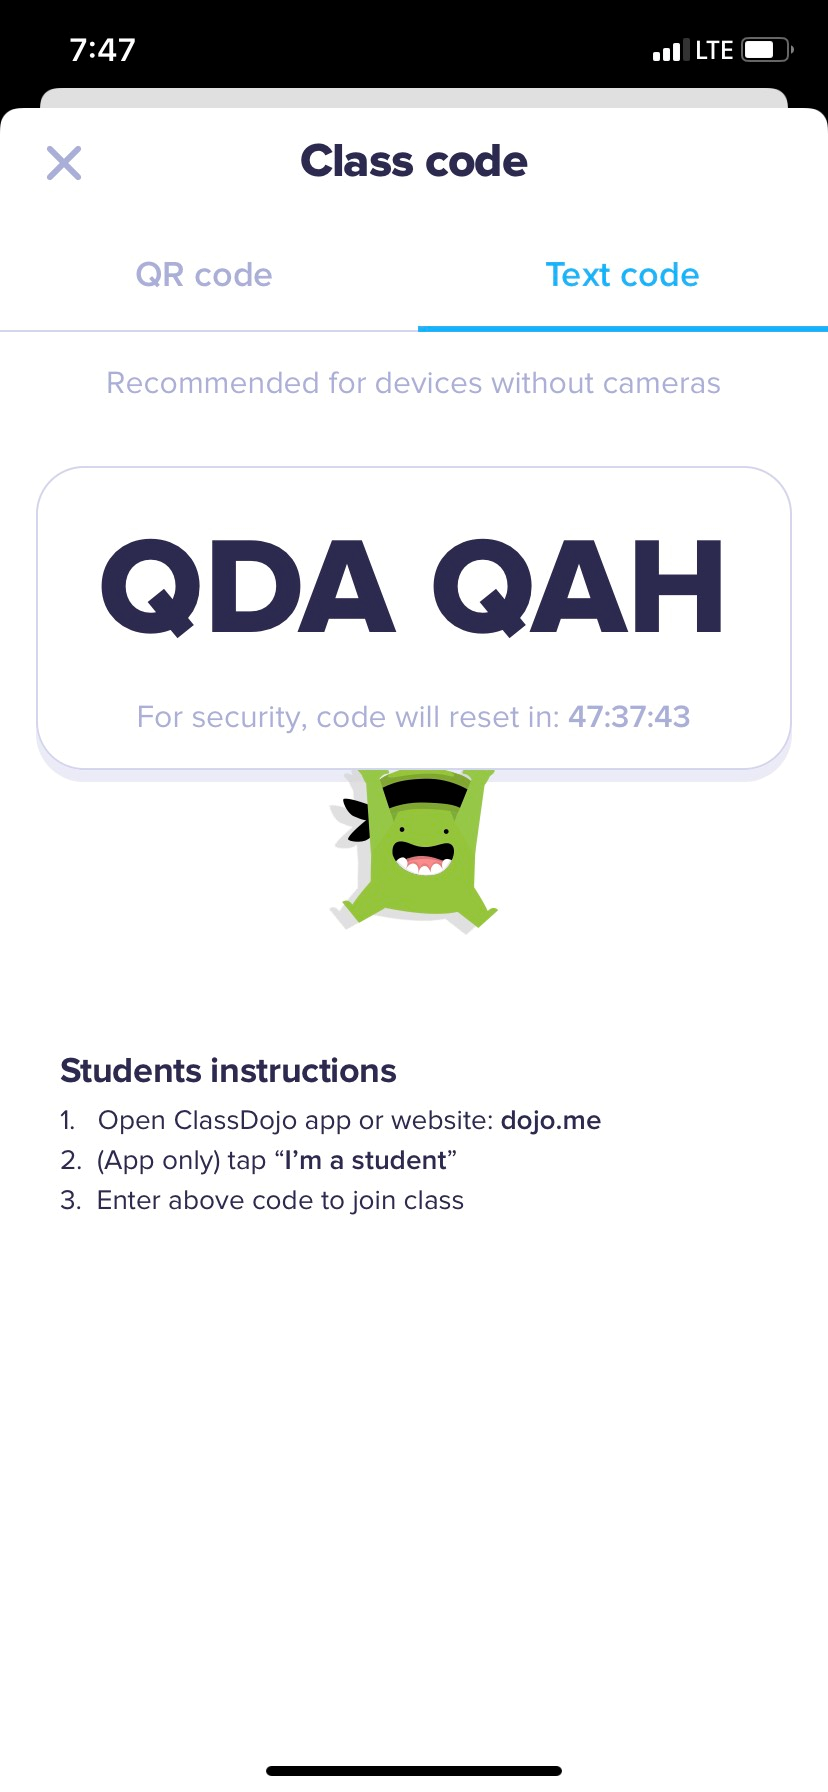 Please make sure to have the students log on to class dojo and enter this code for their own portfolio!